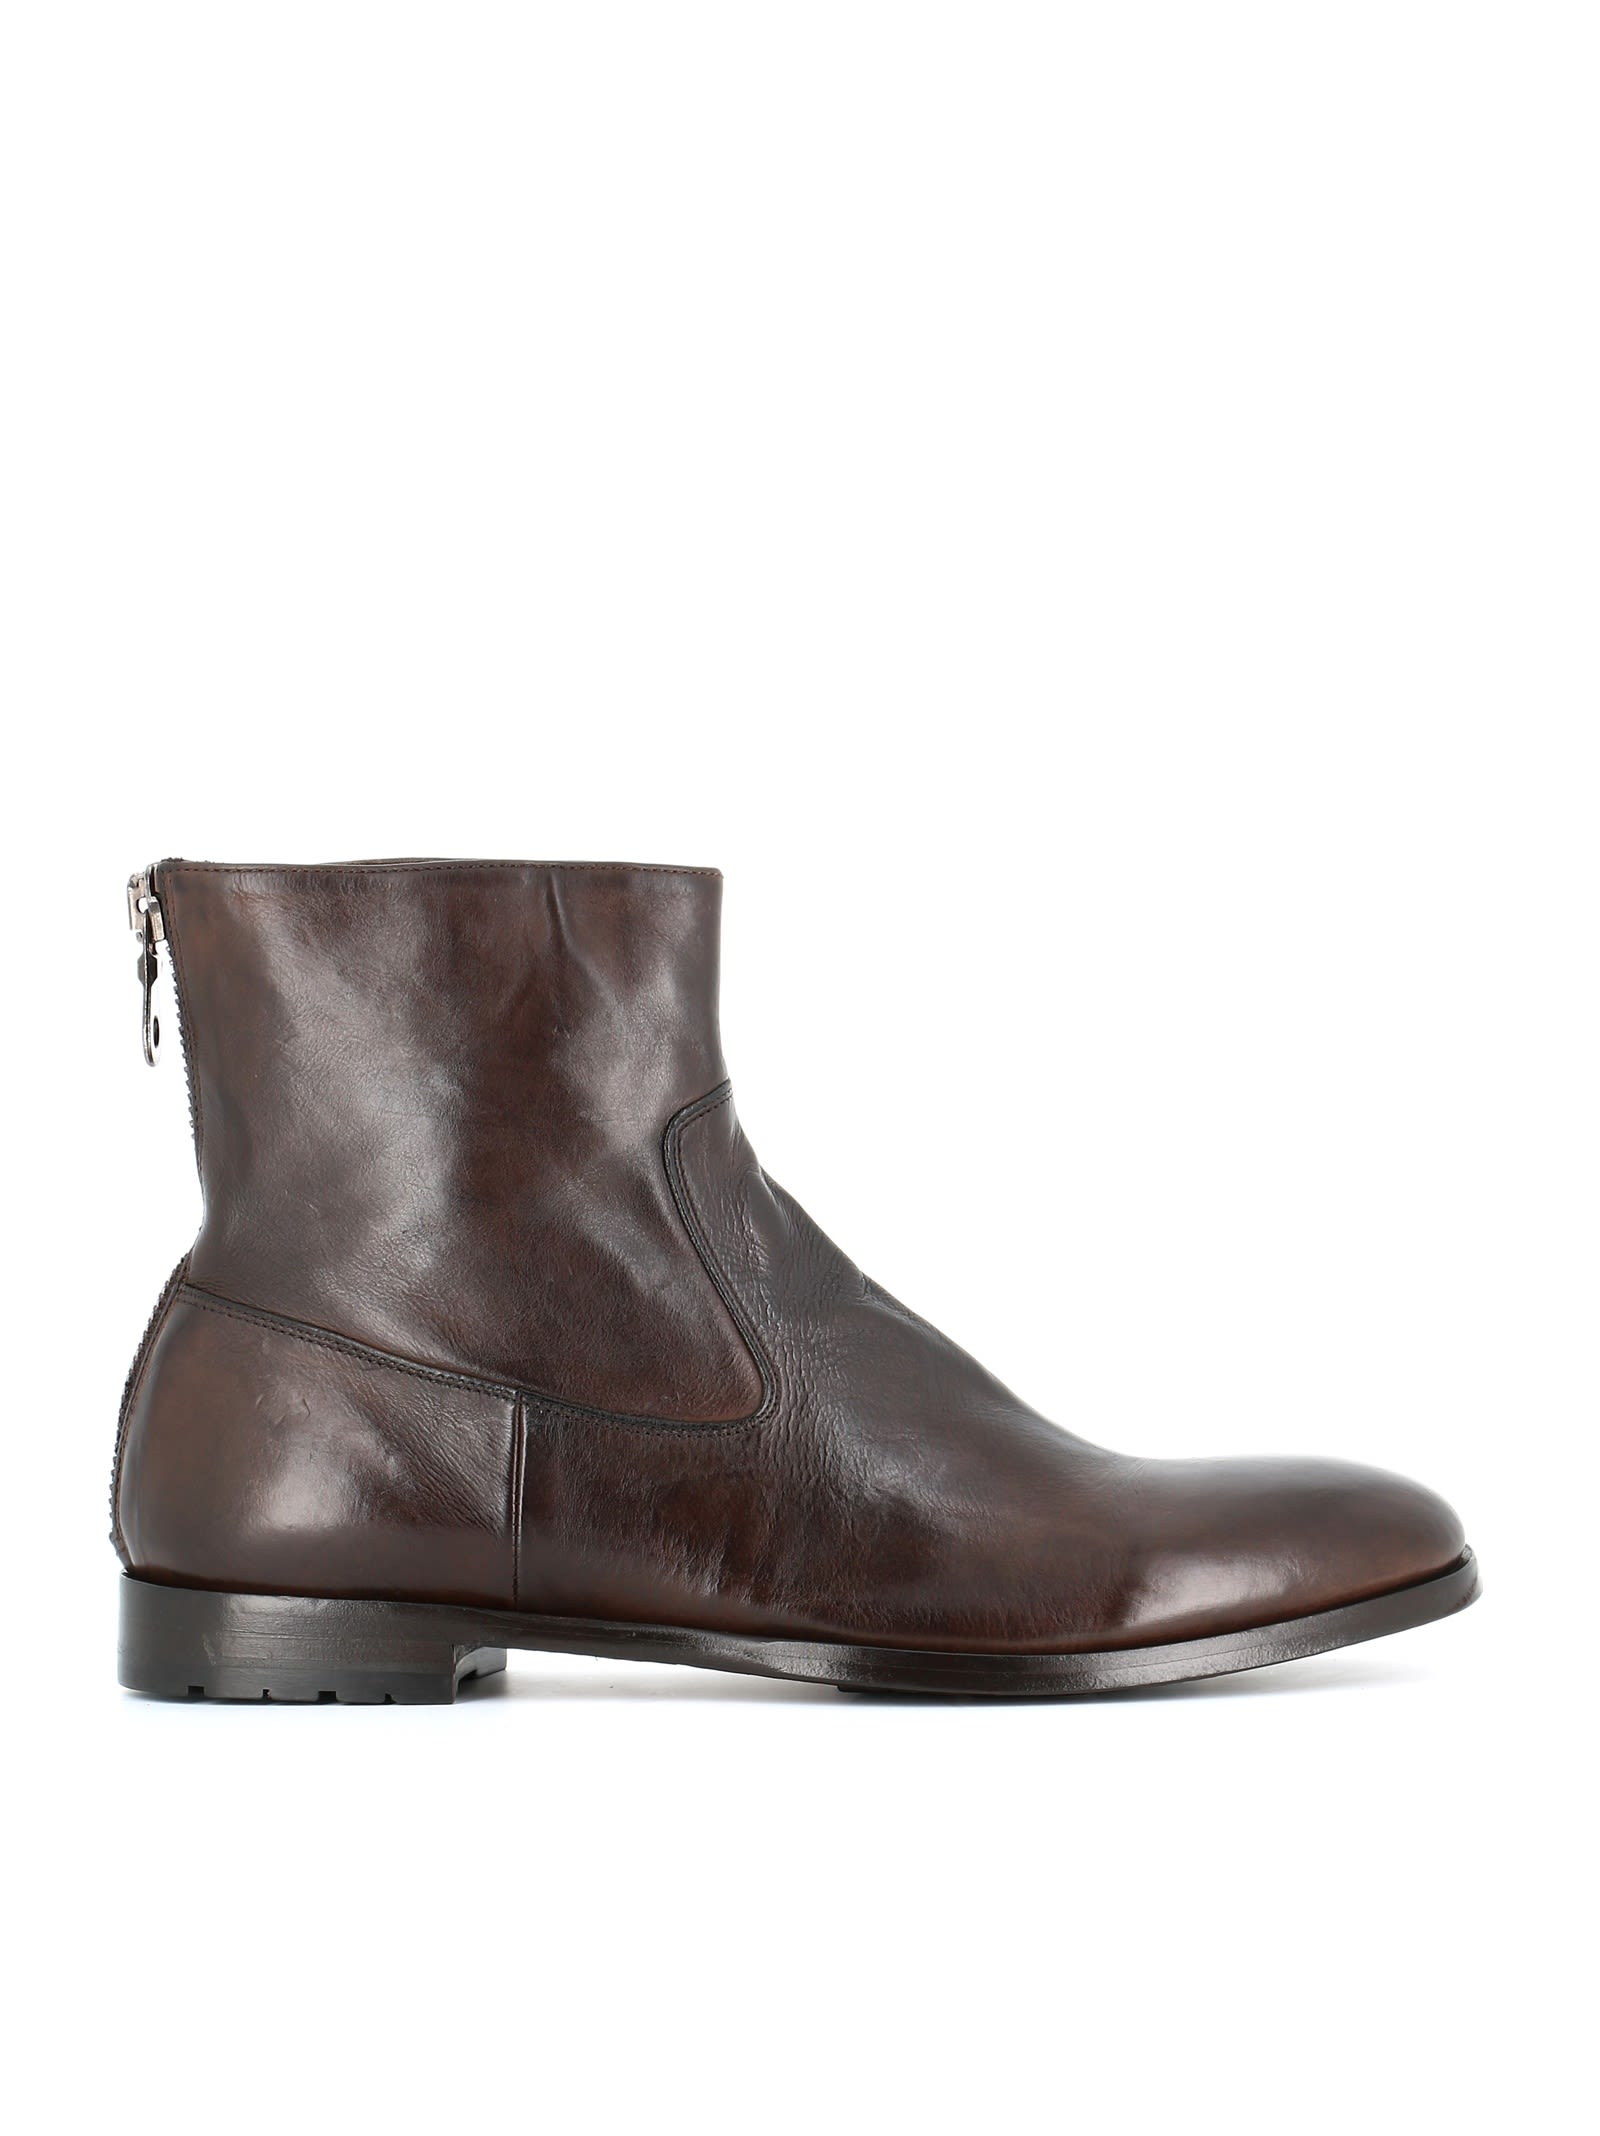 "STURLINI Ankle Boot ""Ar-6607"" in Brown"